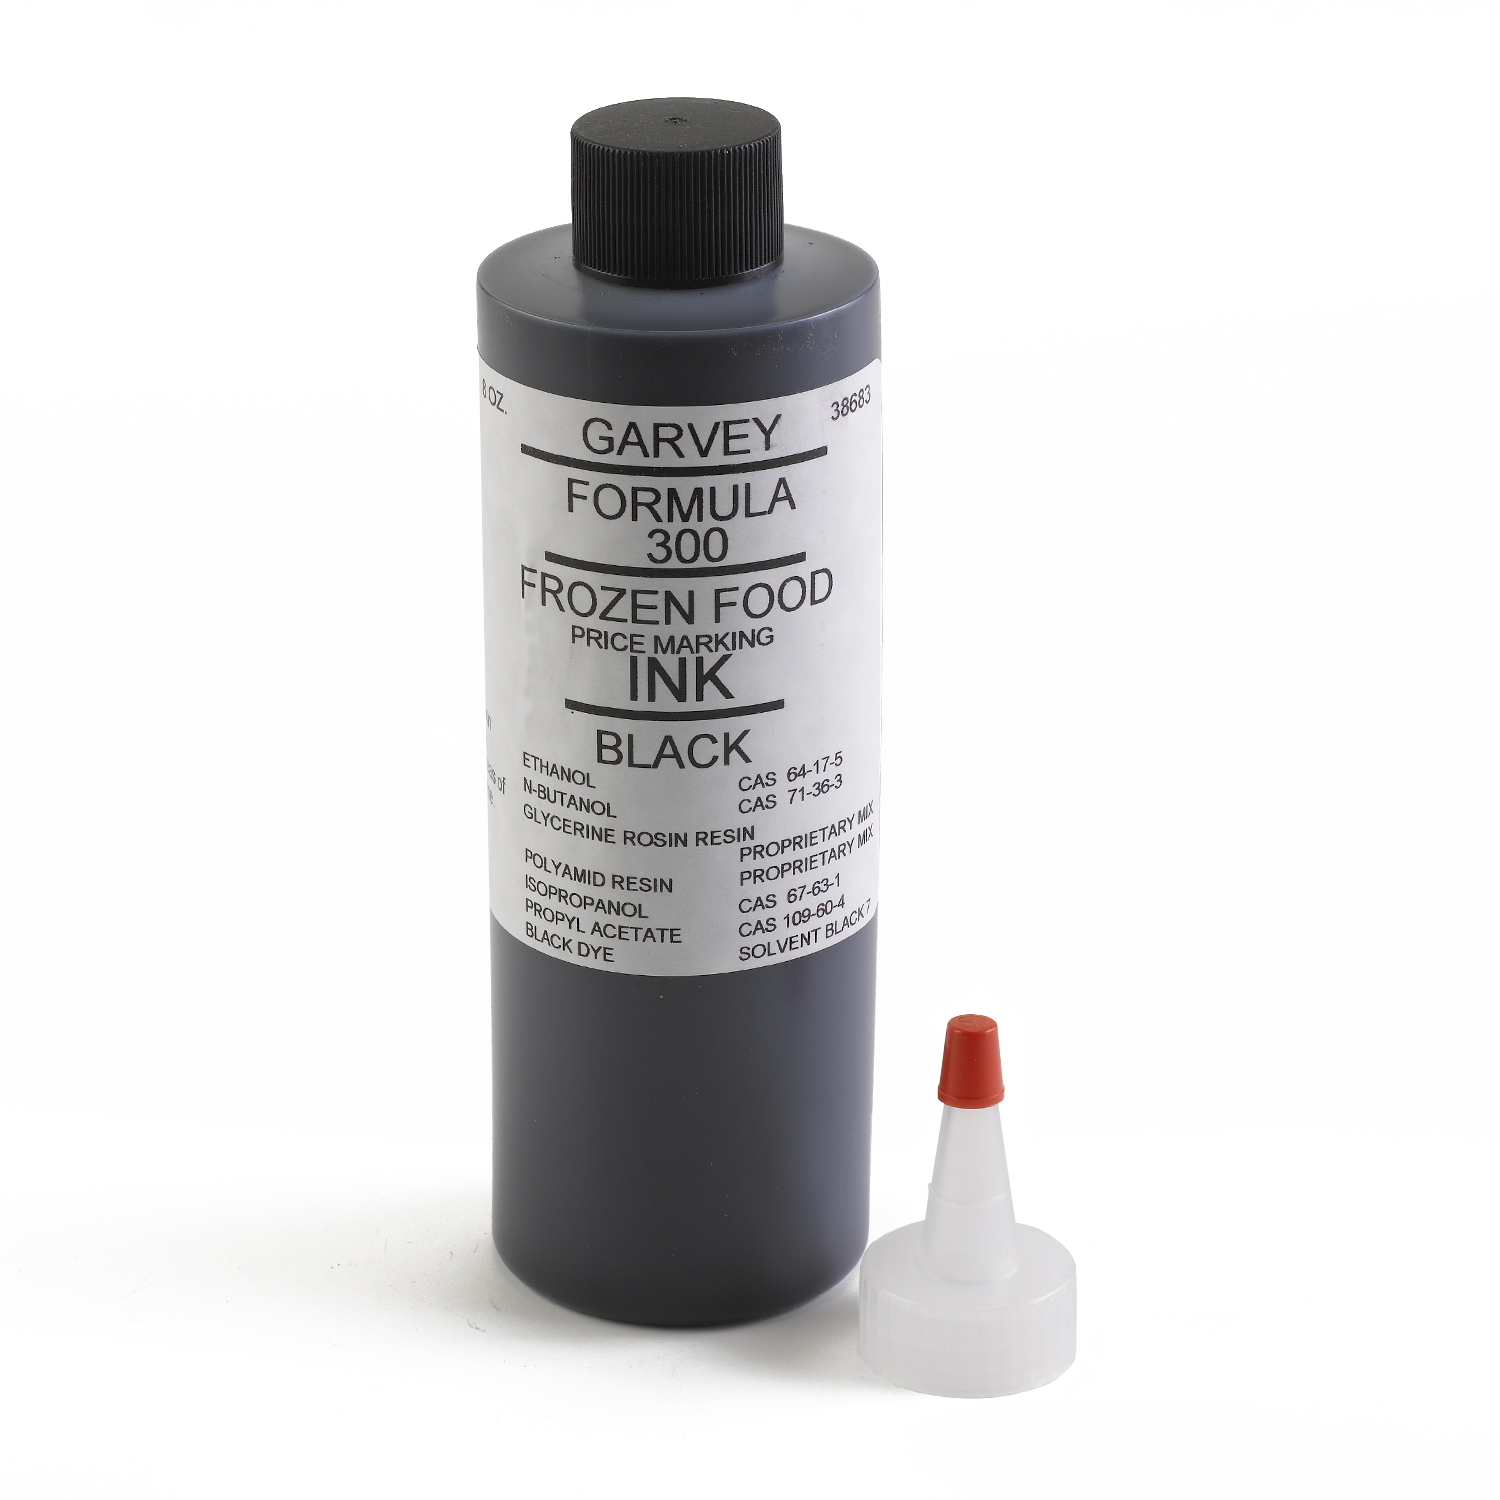 Garvey Freezer Grade Black Price Marking Ink 8 oz - INK-38683